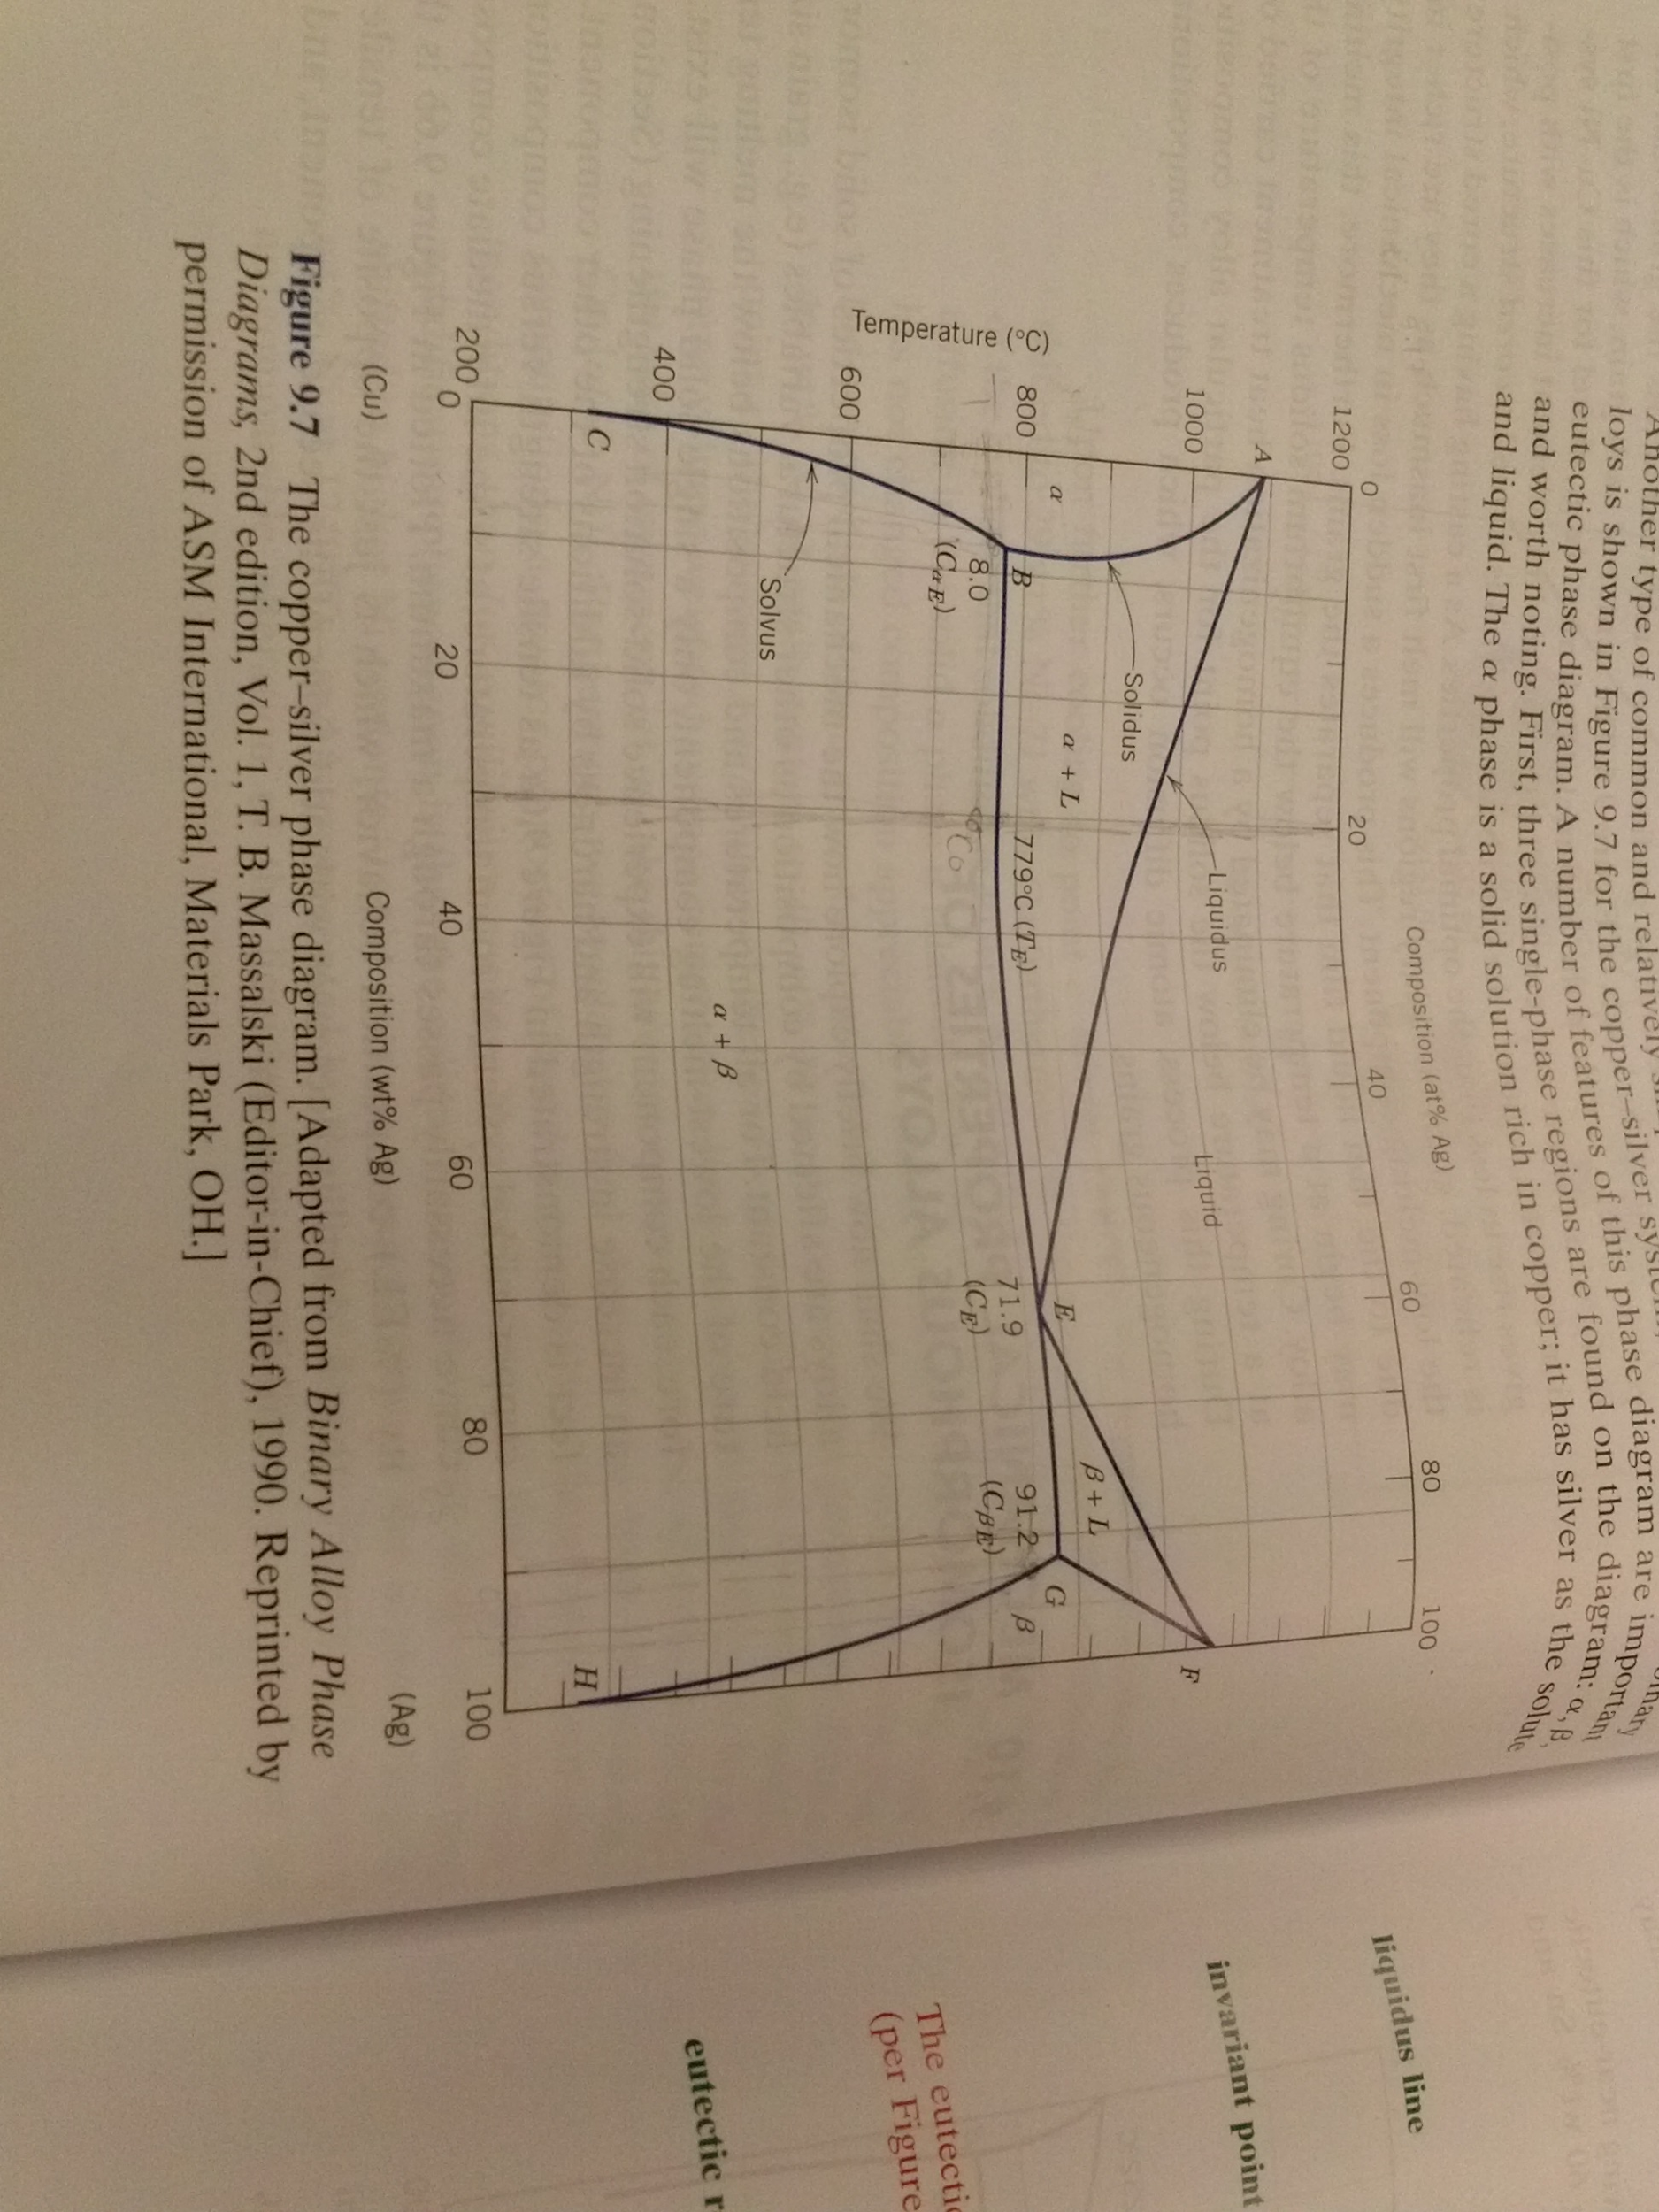 eutectic phase diagram. A number oi features of th